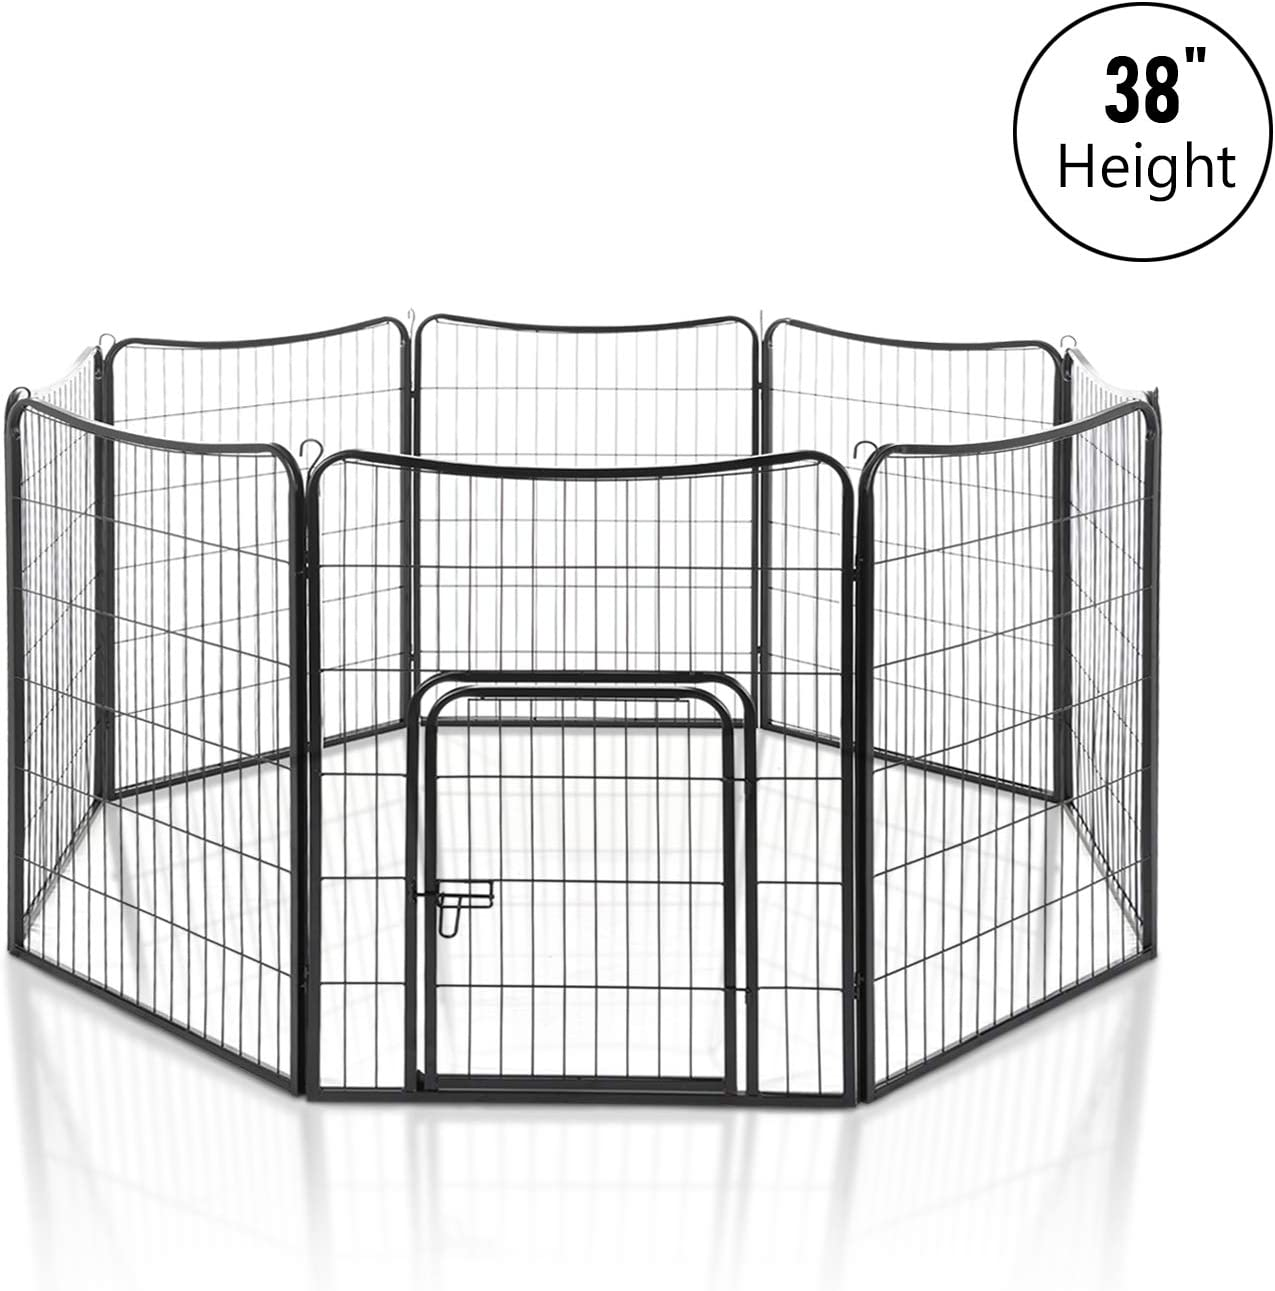 LAZY BUDDY Dog Playpen, Pet Playpen, 4-16 Pannels Fordable Pet Excerise Pen for Small Big Dogs and Other Pets